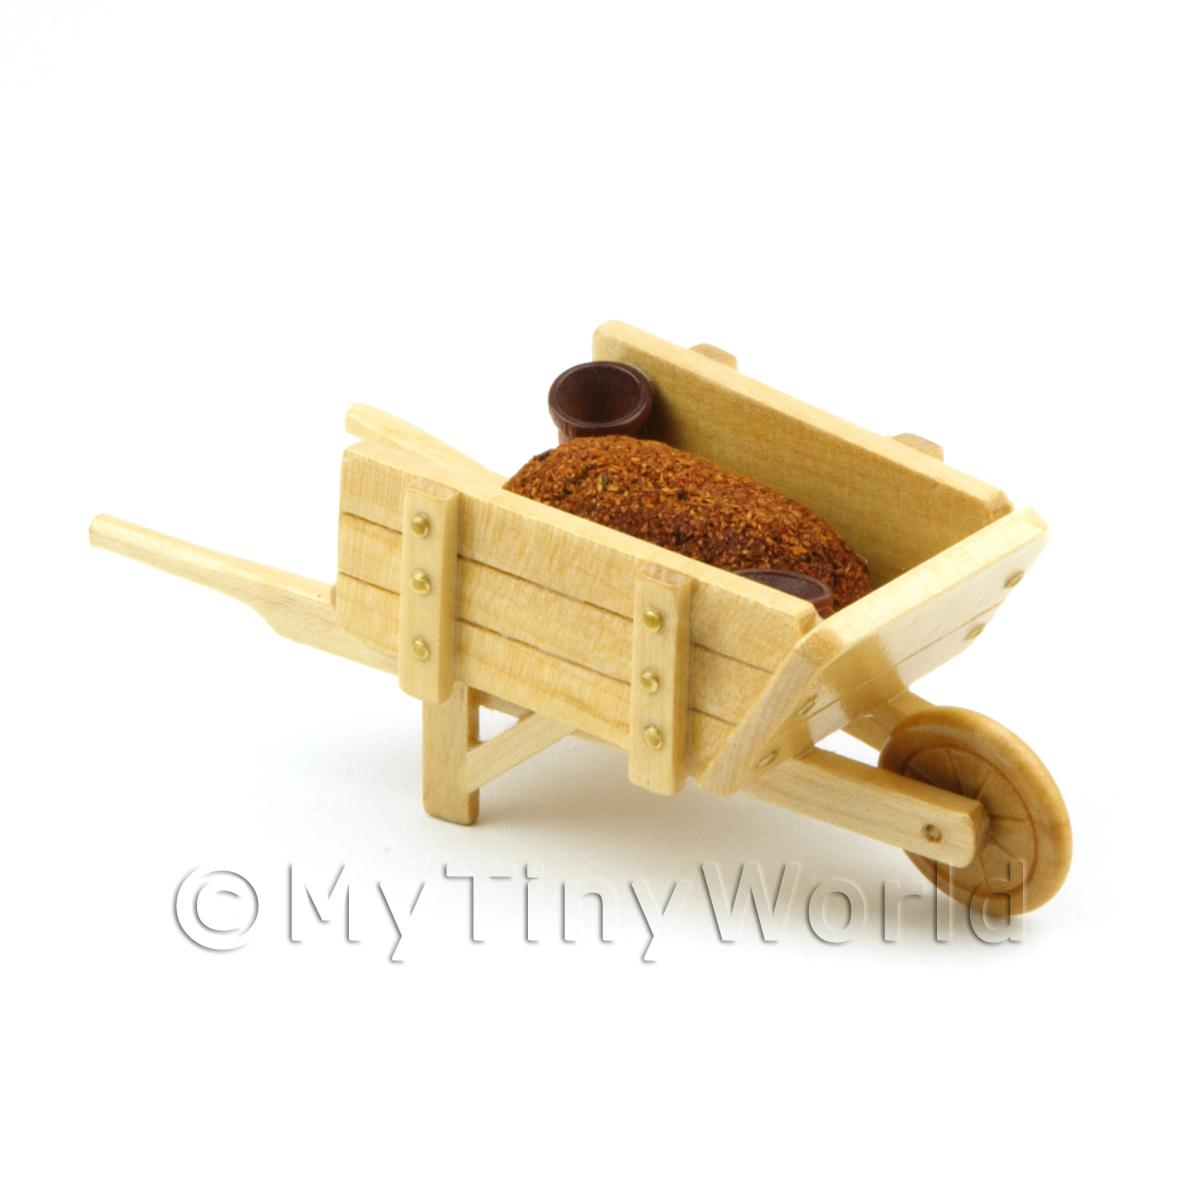 Dolls House Miniature Wood Wheelbarrow with Pots and Earth